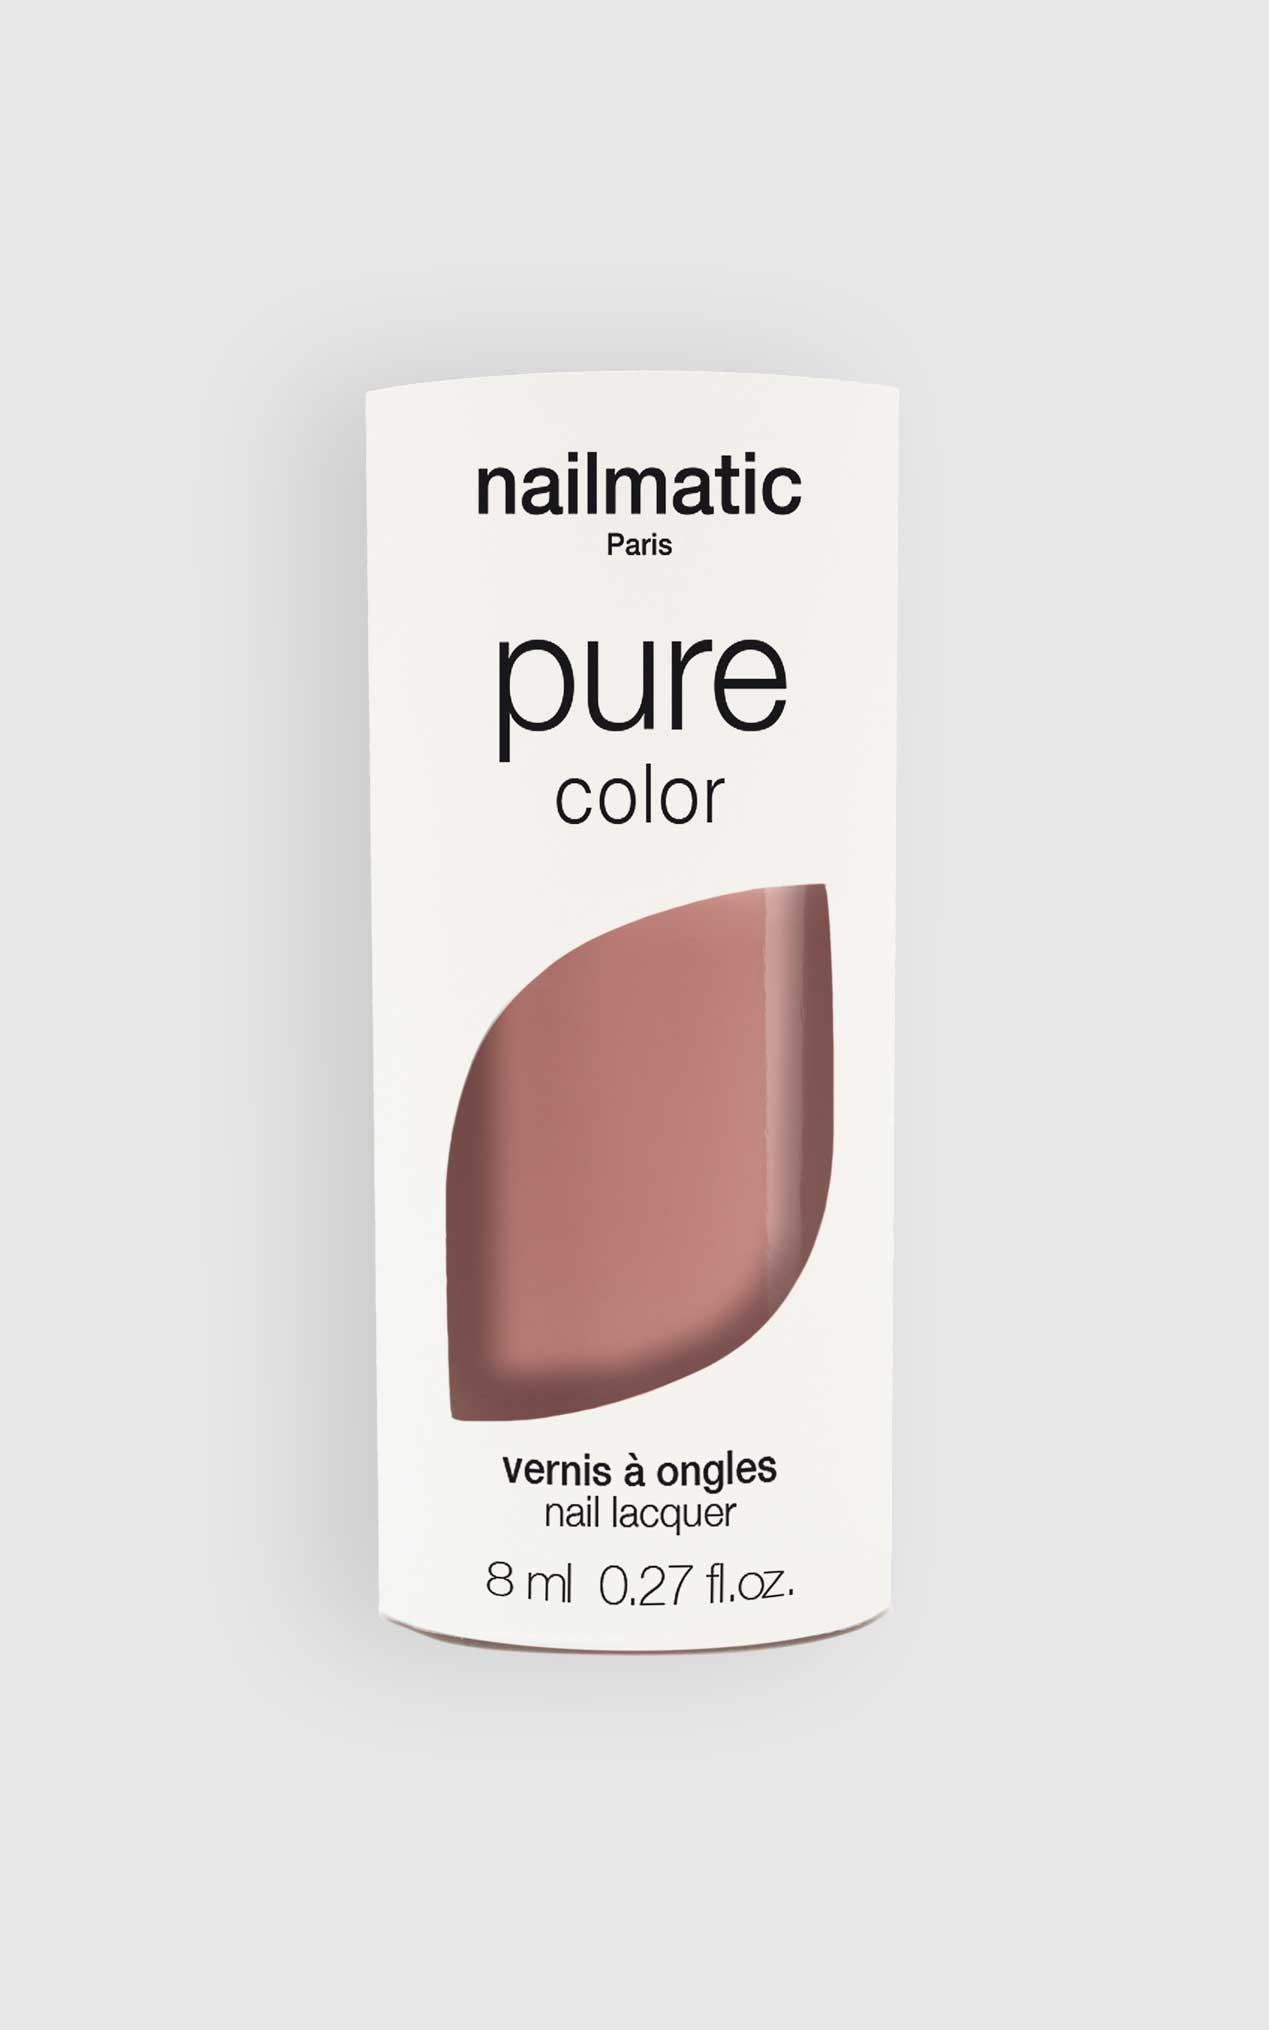 Nailmatic - Pure Color Imani Nail Polish in Pink Hazelnut, Cream, hi-res image number null